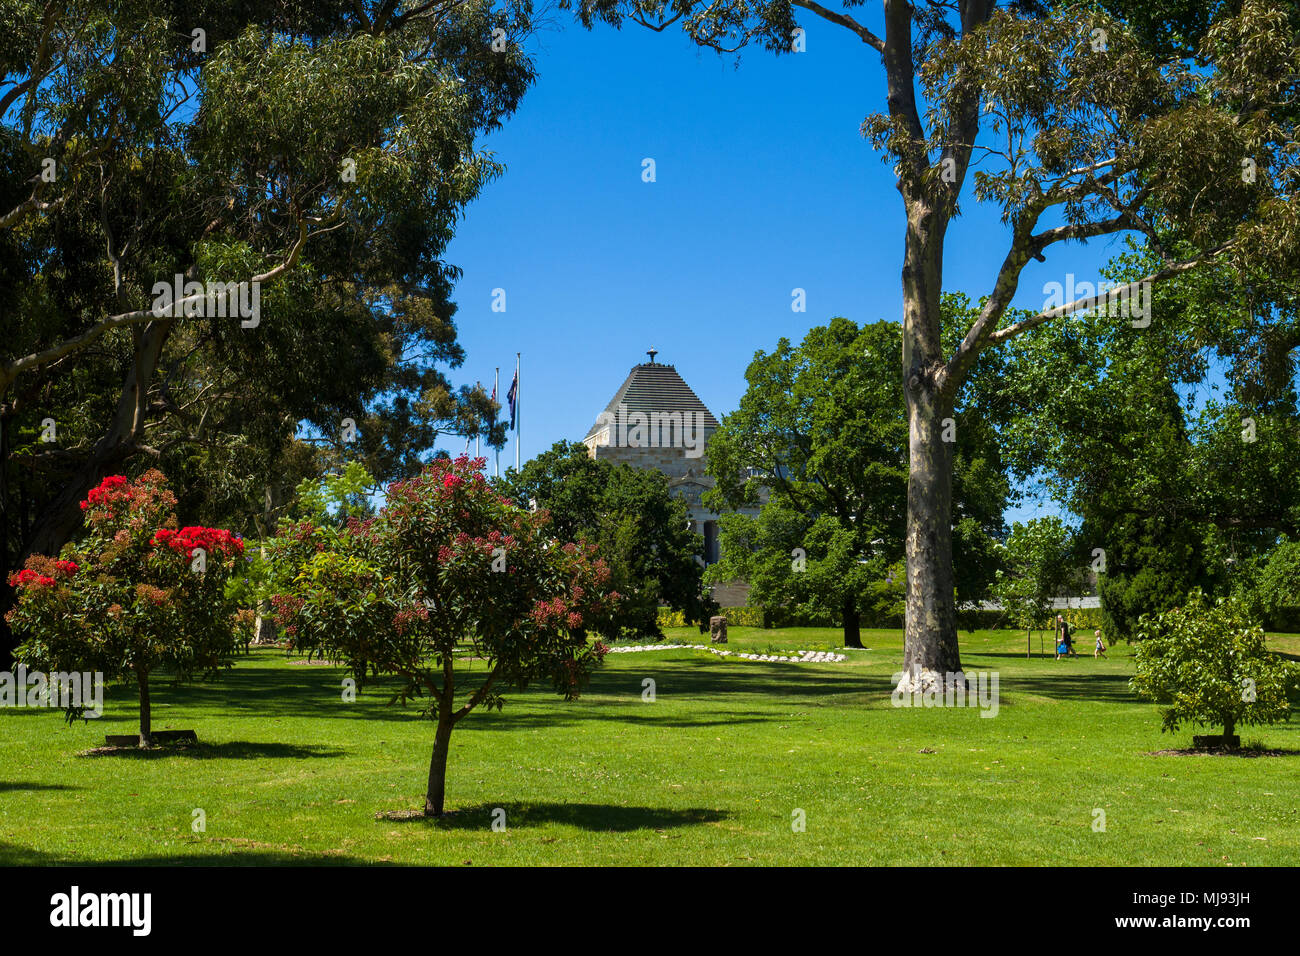 Kings Domain park with view of summit of the Shrine of Remembrance, Melbourne, Victoria, Australia. - Stock Image